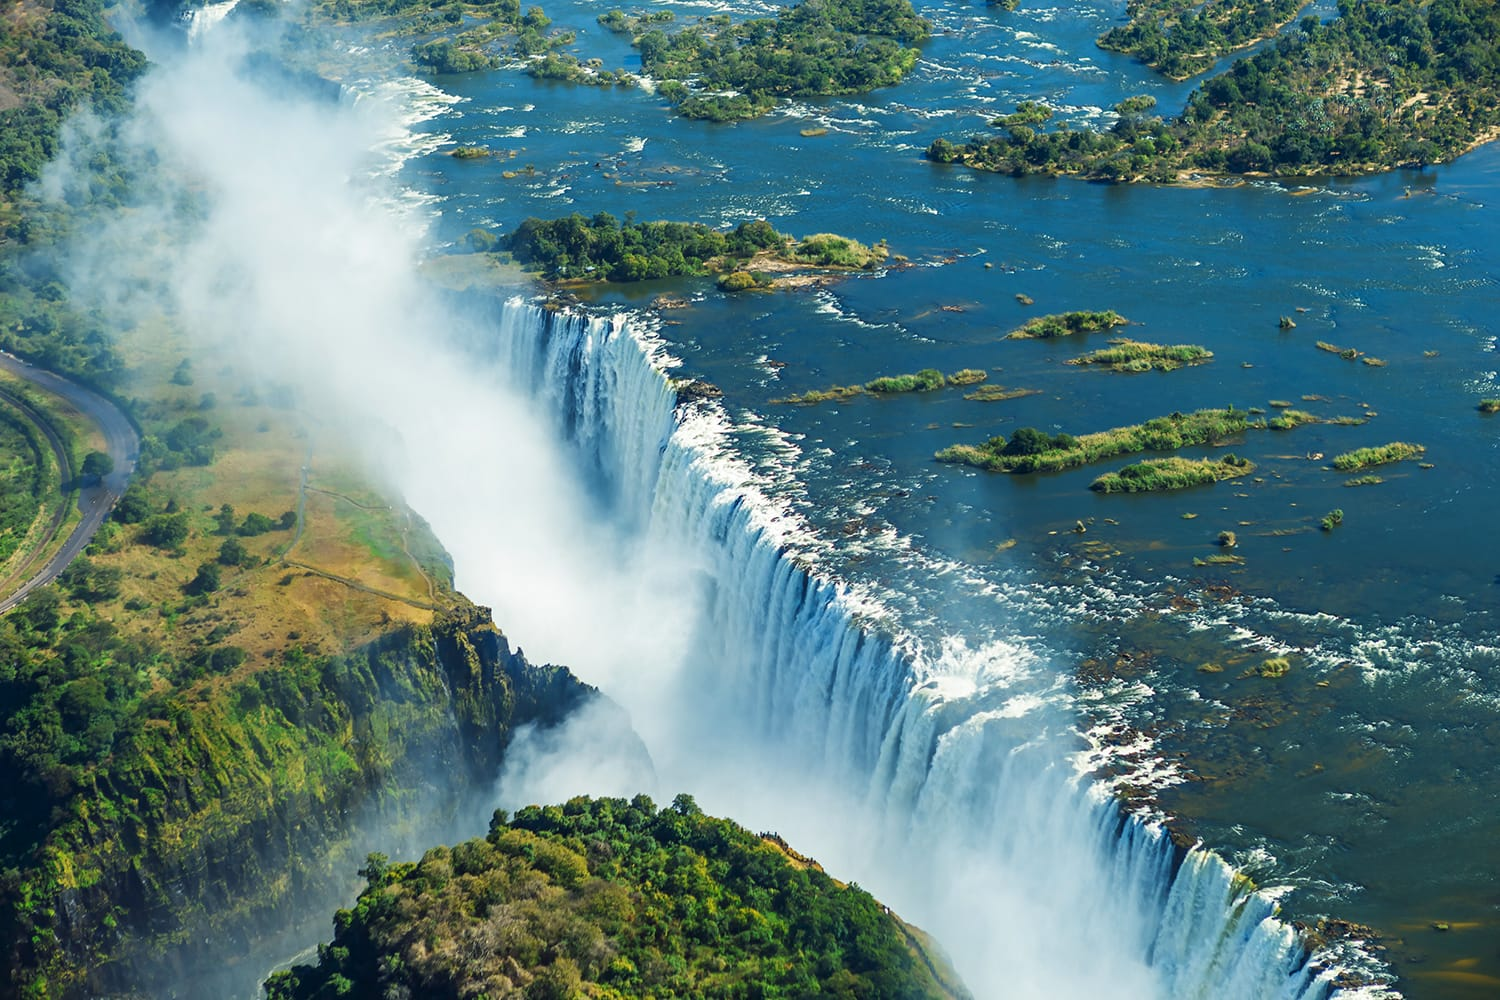 Aerial view of Victoria Falls in Zambia and Zimbabwe, Africa